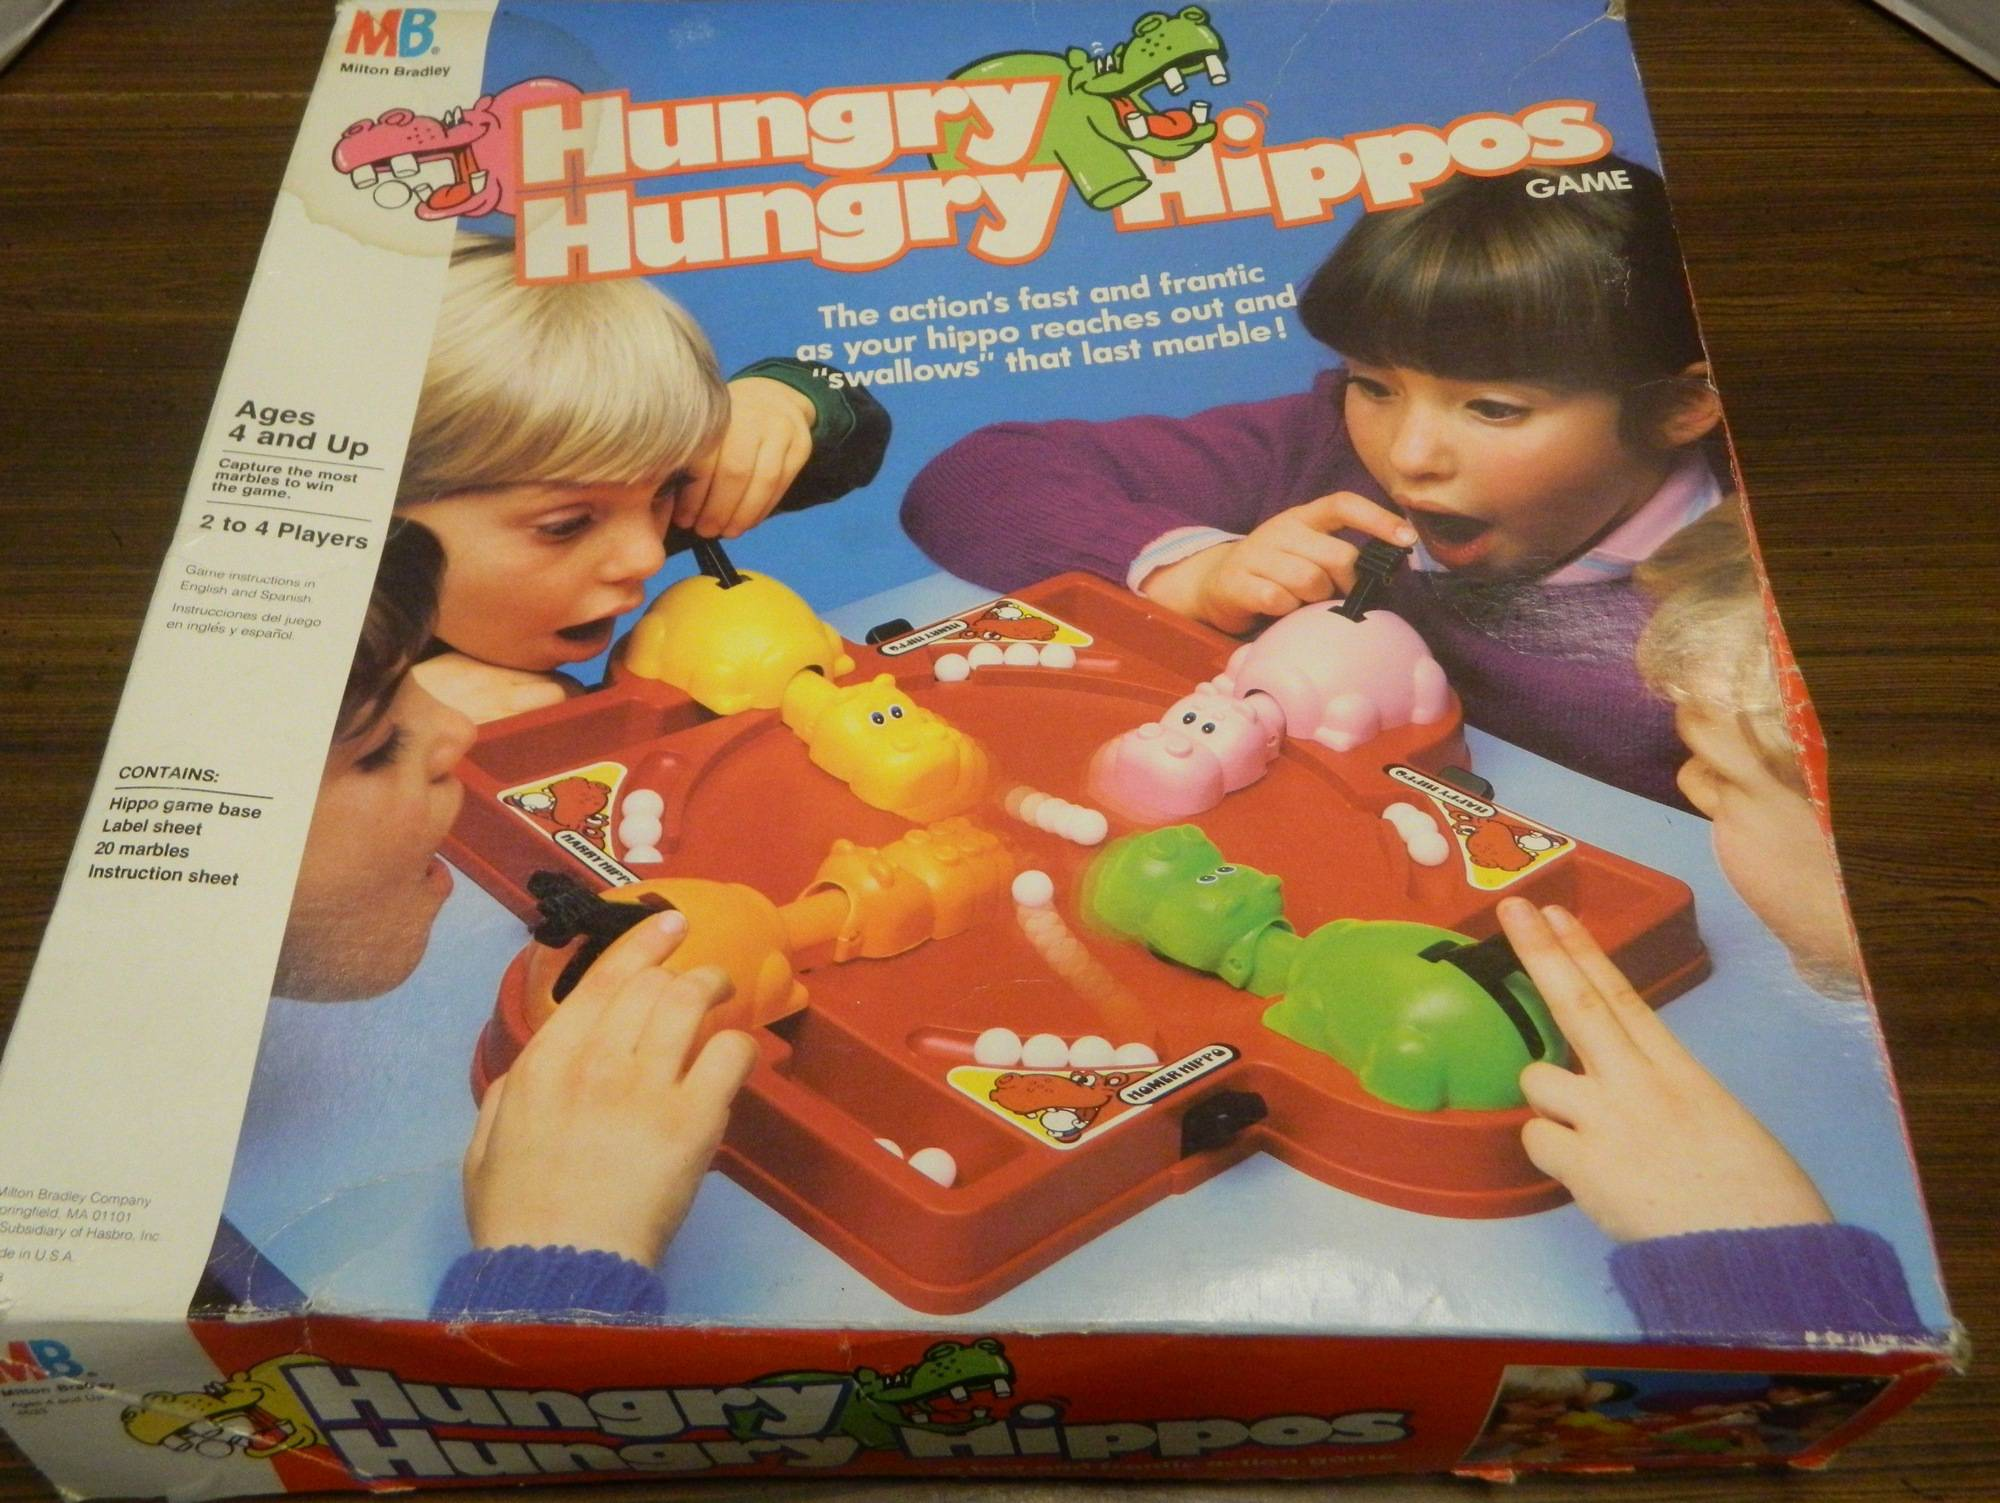 Box for Hungry Hungry Hippos